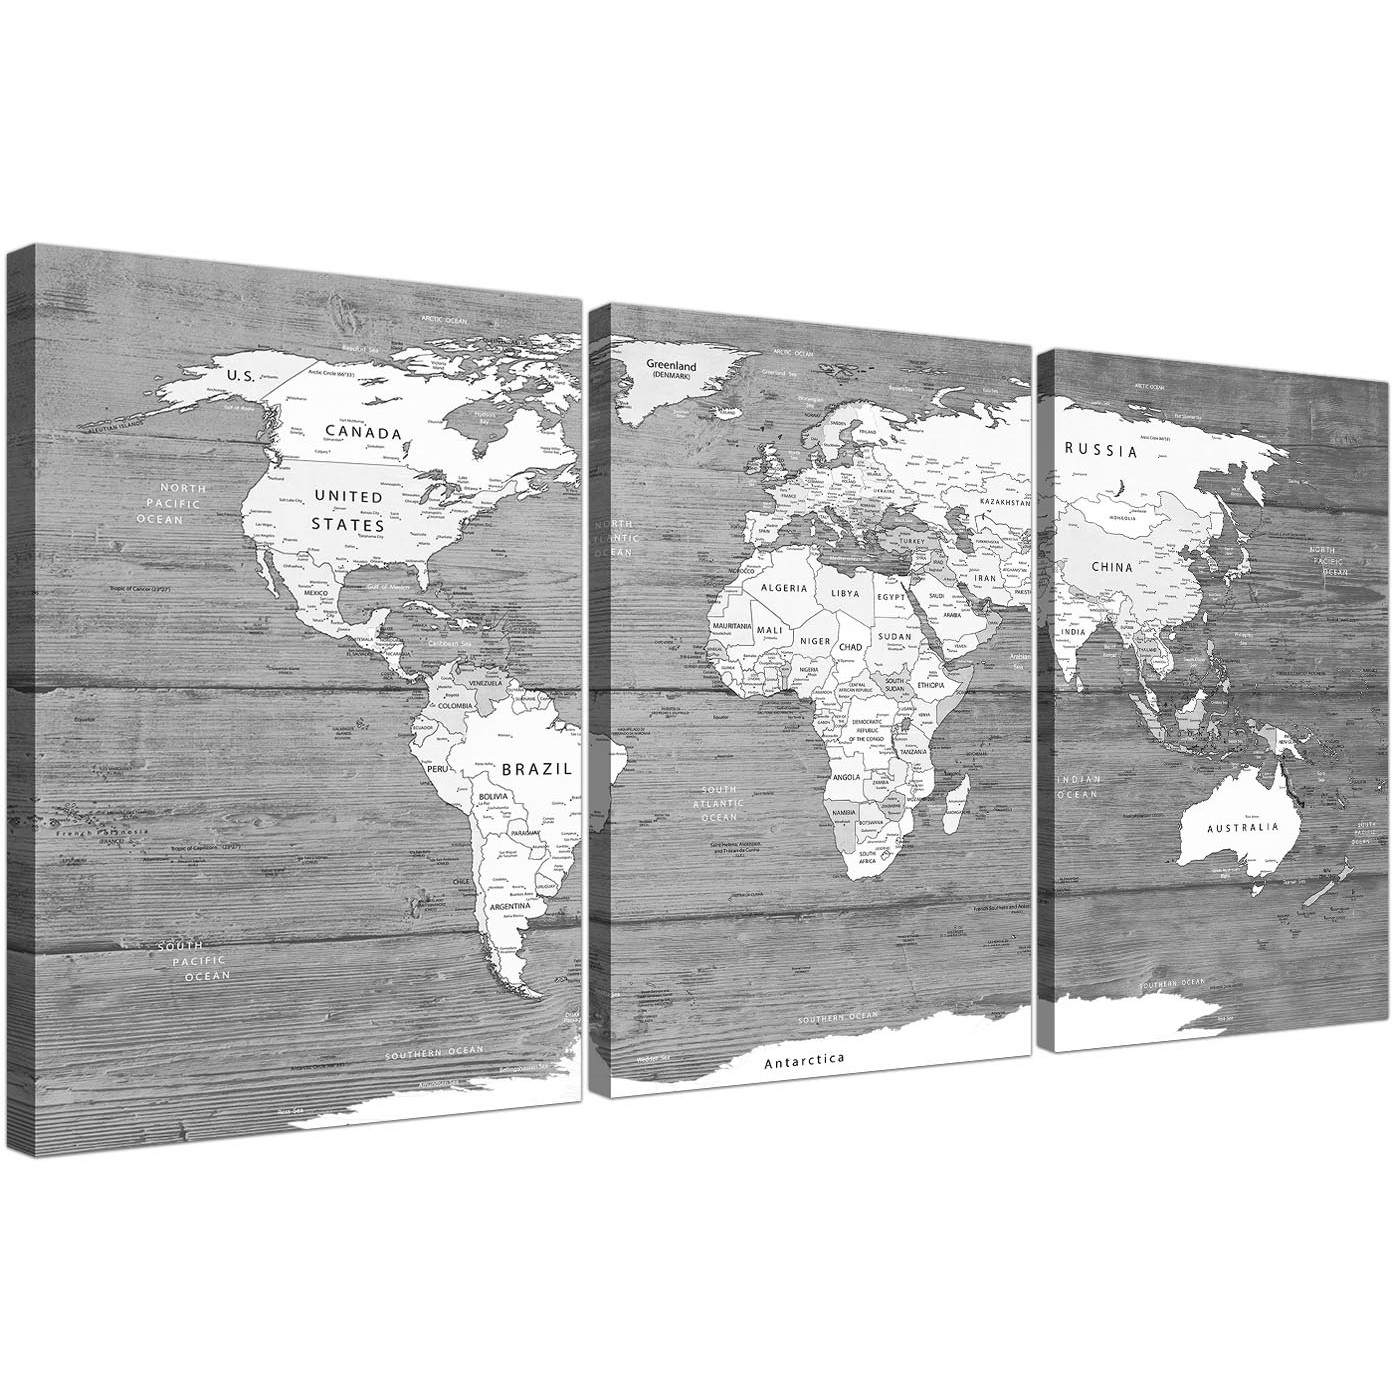 Large Black White Map Of World Atlas – Canvas Wall Art Print – Split For Most Up To Date White Wall Art (Gallery 1 of 20)